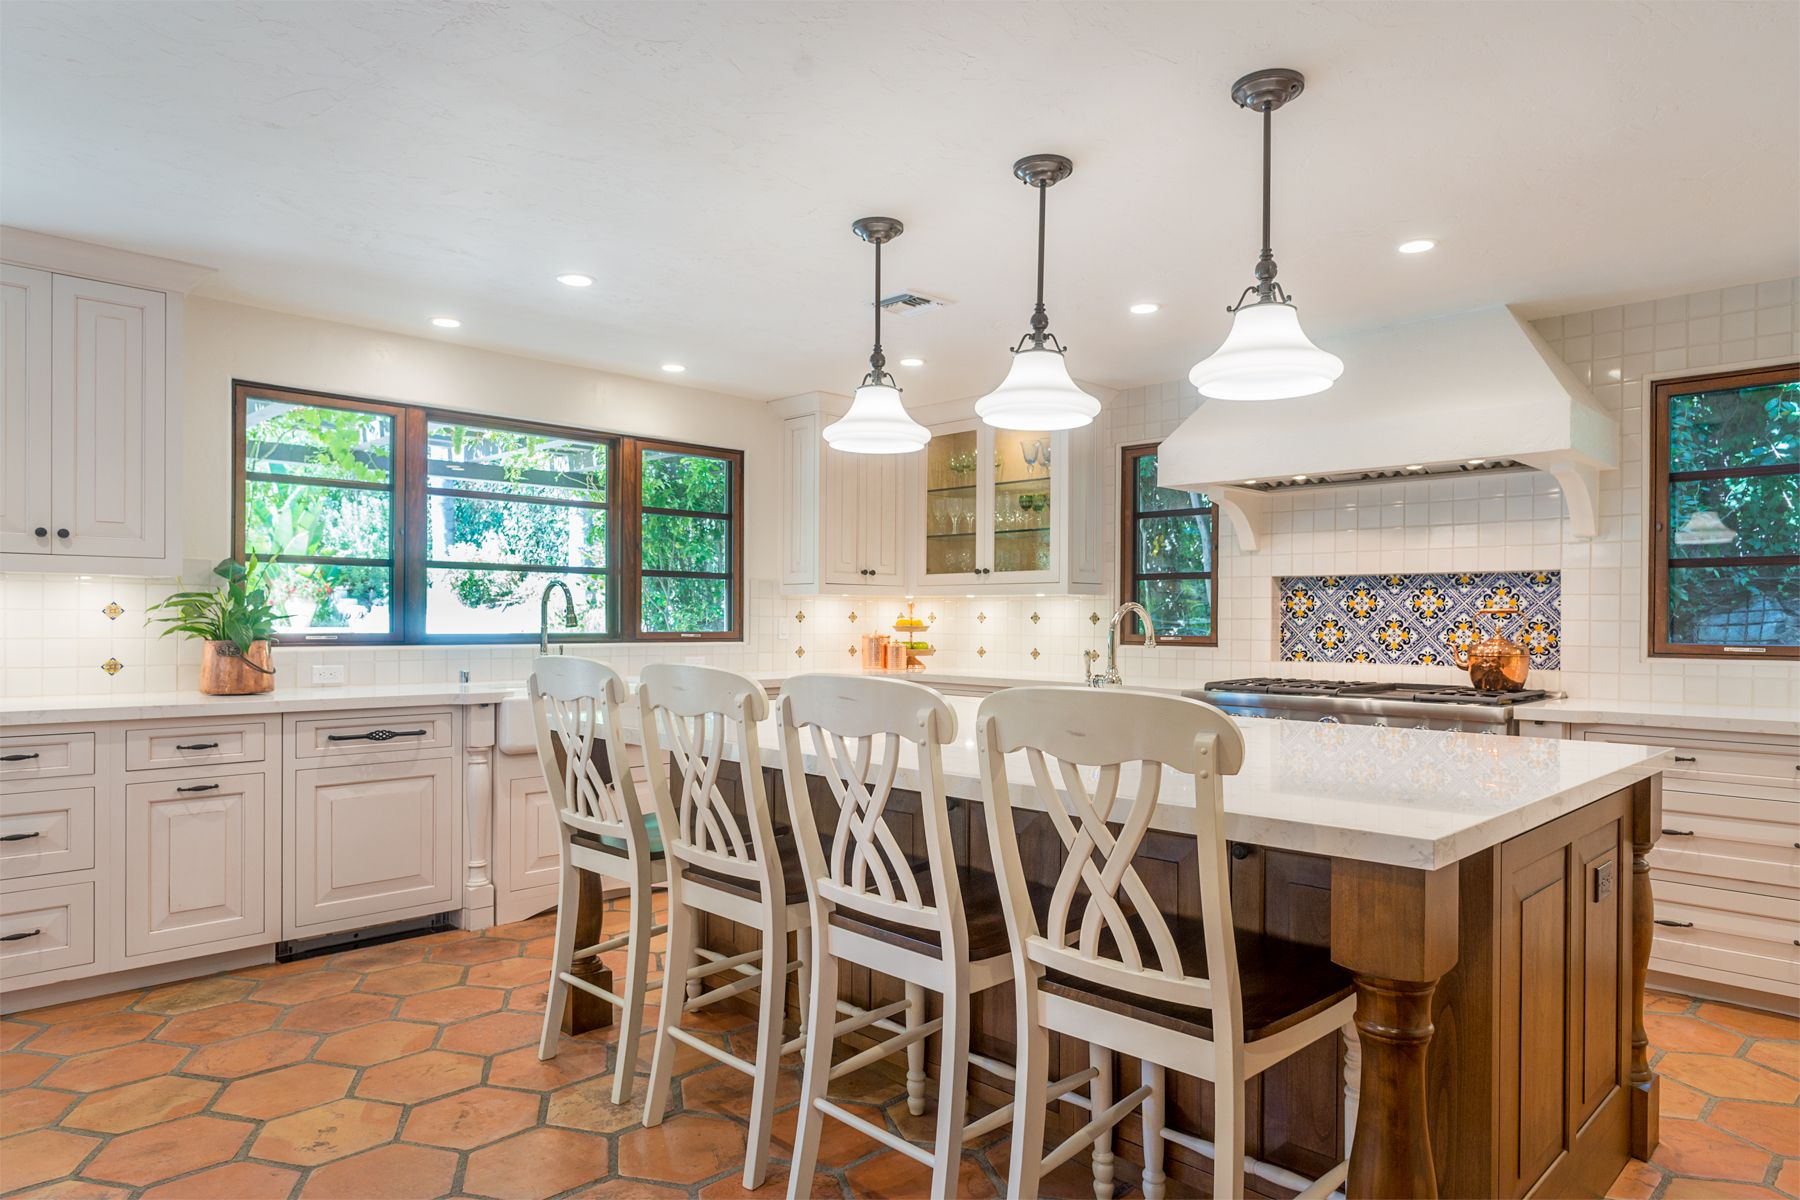 A Contemporary Spanish Style Kitchen Renovation With A U Shaped Layout In Westlake Village Histor Spanish Style Kitchen Mediterranean Home Decor Spanish Style